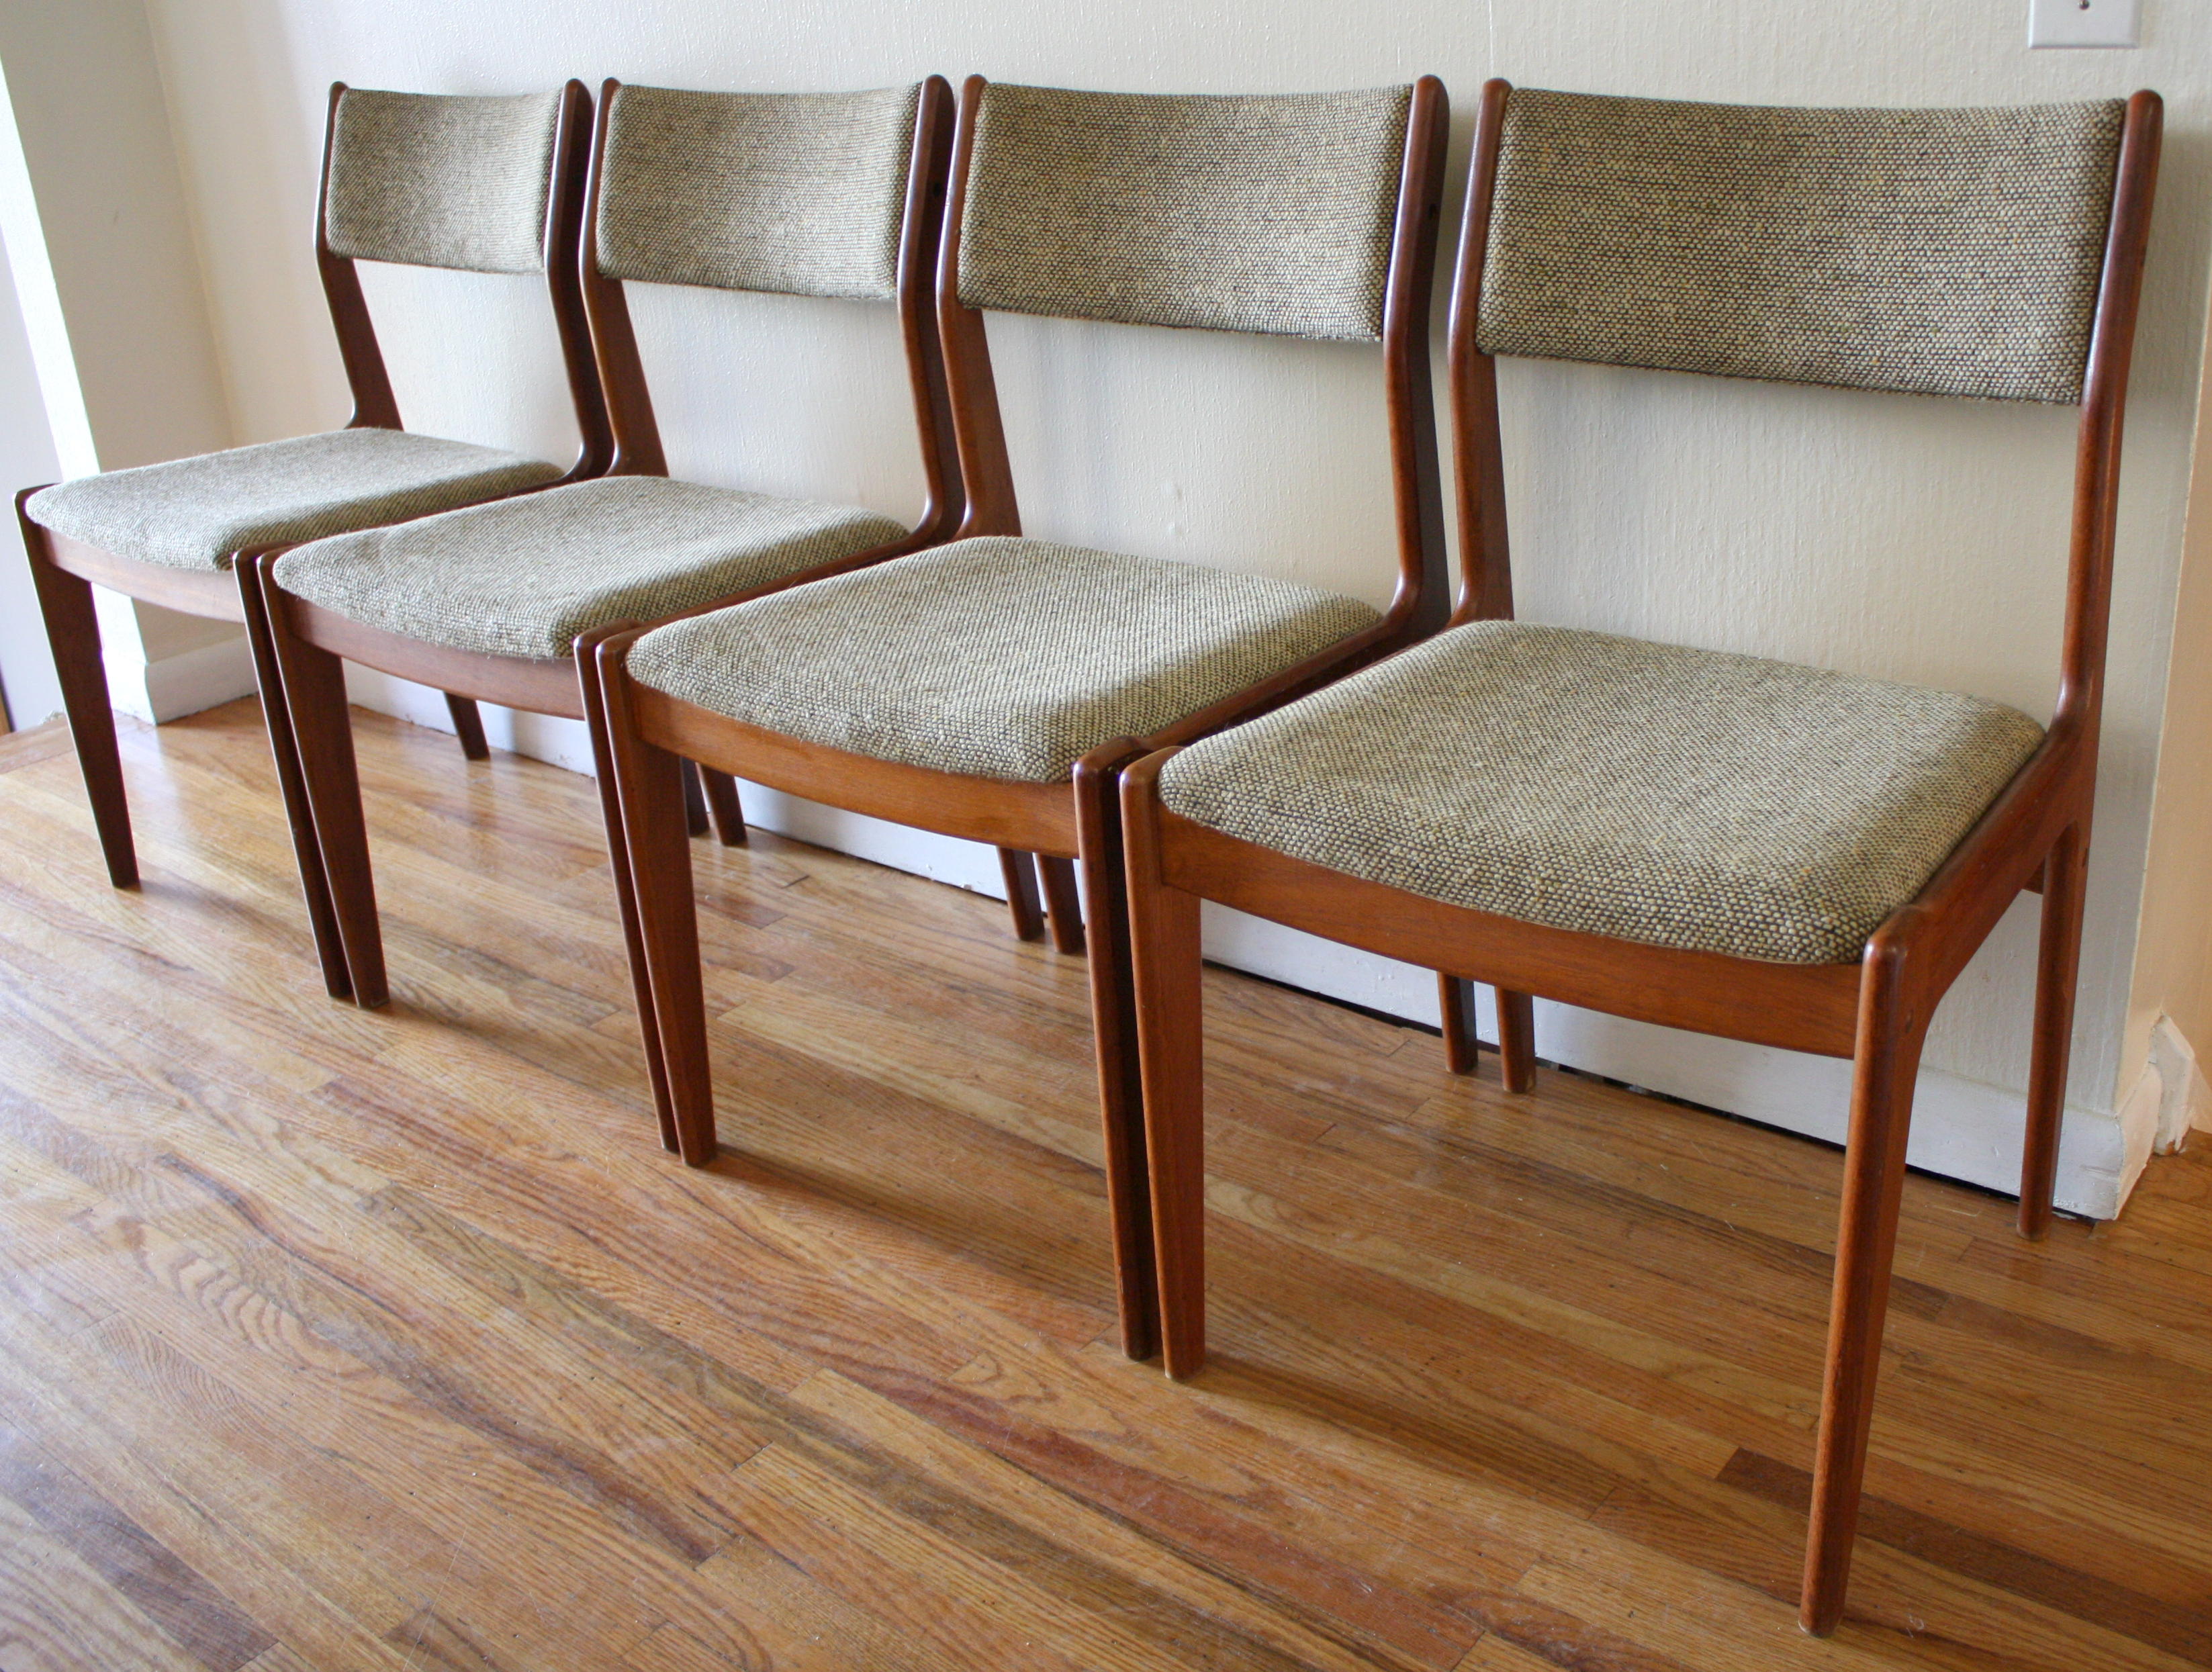 Mid Century Modern Style Chairs Set Of 4 Mid Century Modern Danish Dining Chairs  Picked Vintage